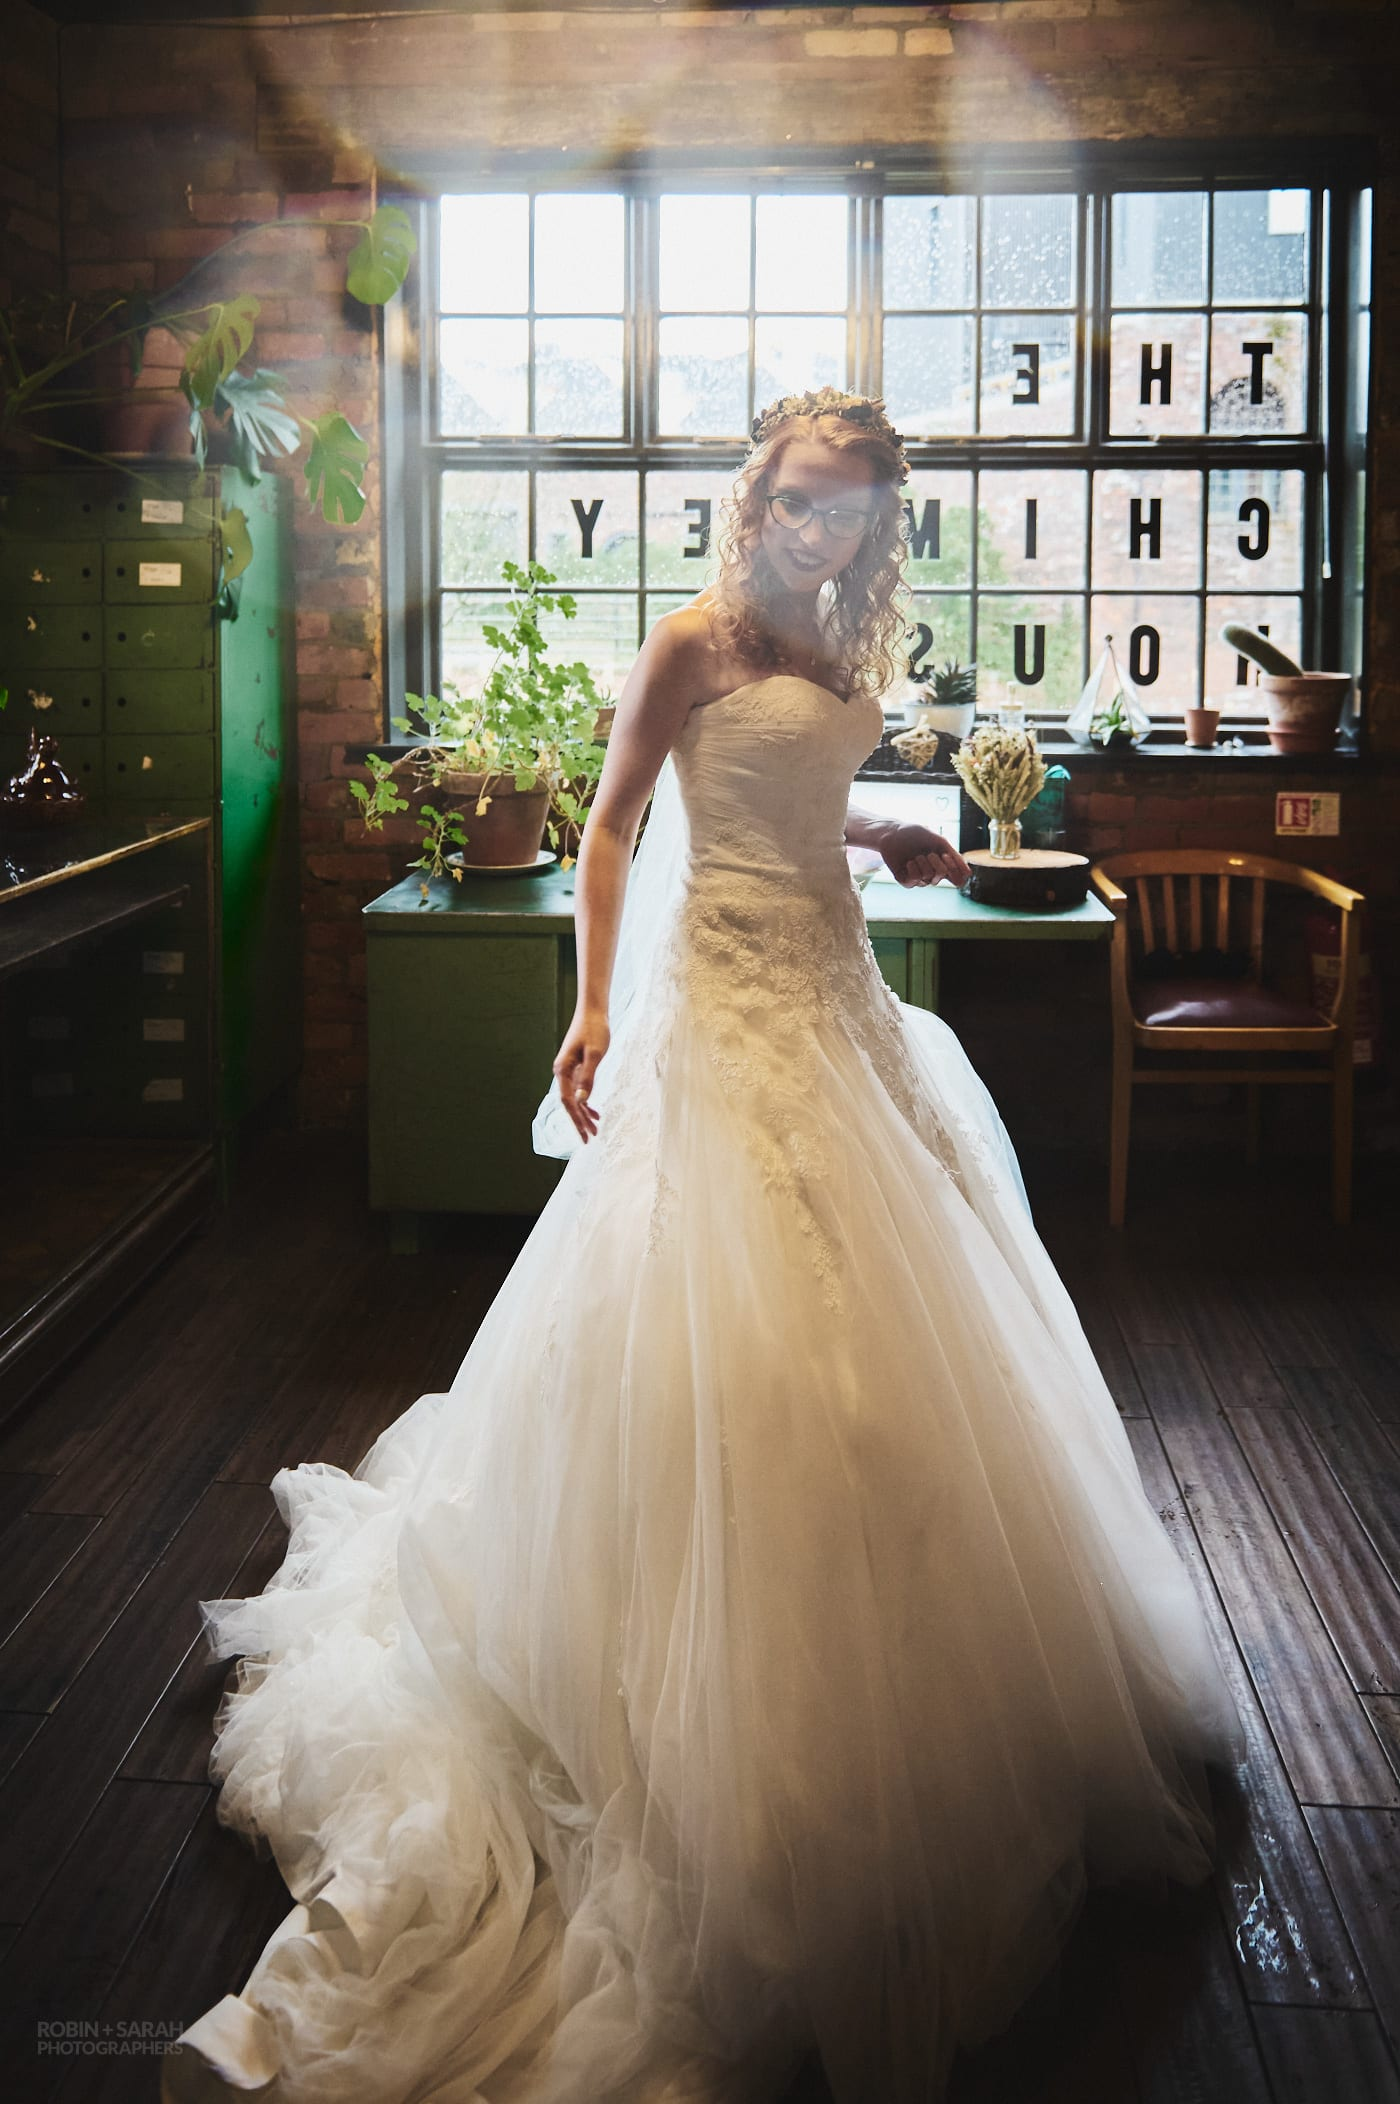 Bride swishes her wedding dress as she arrives for wedding at The Chimney House